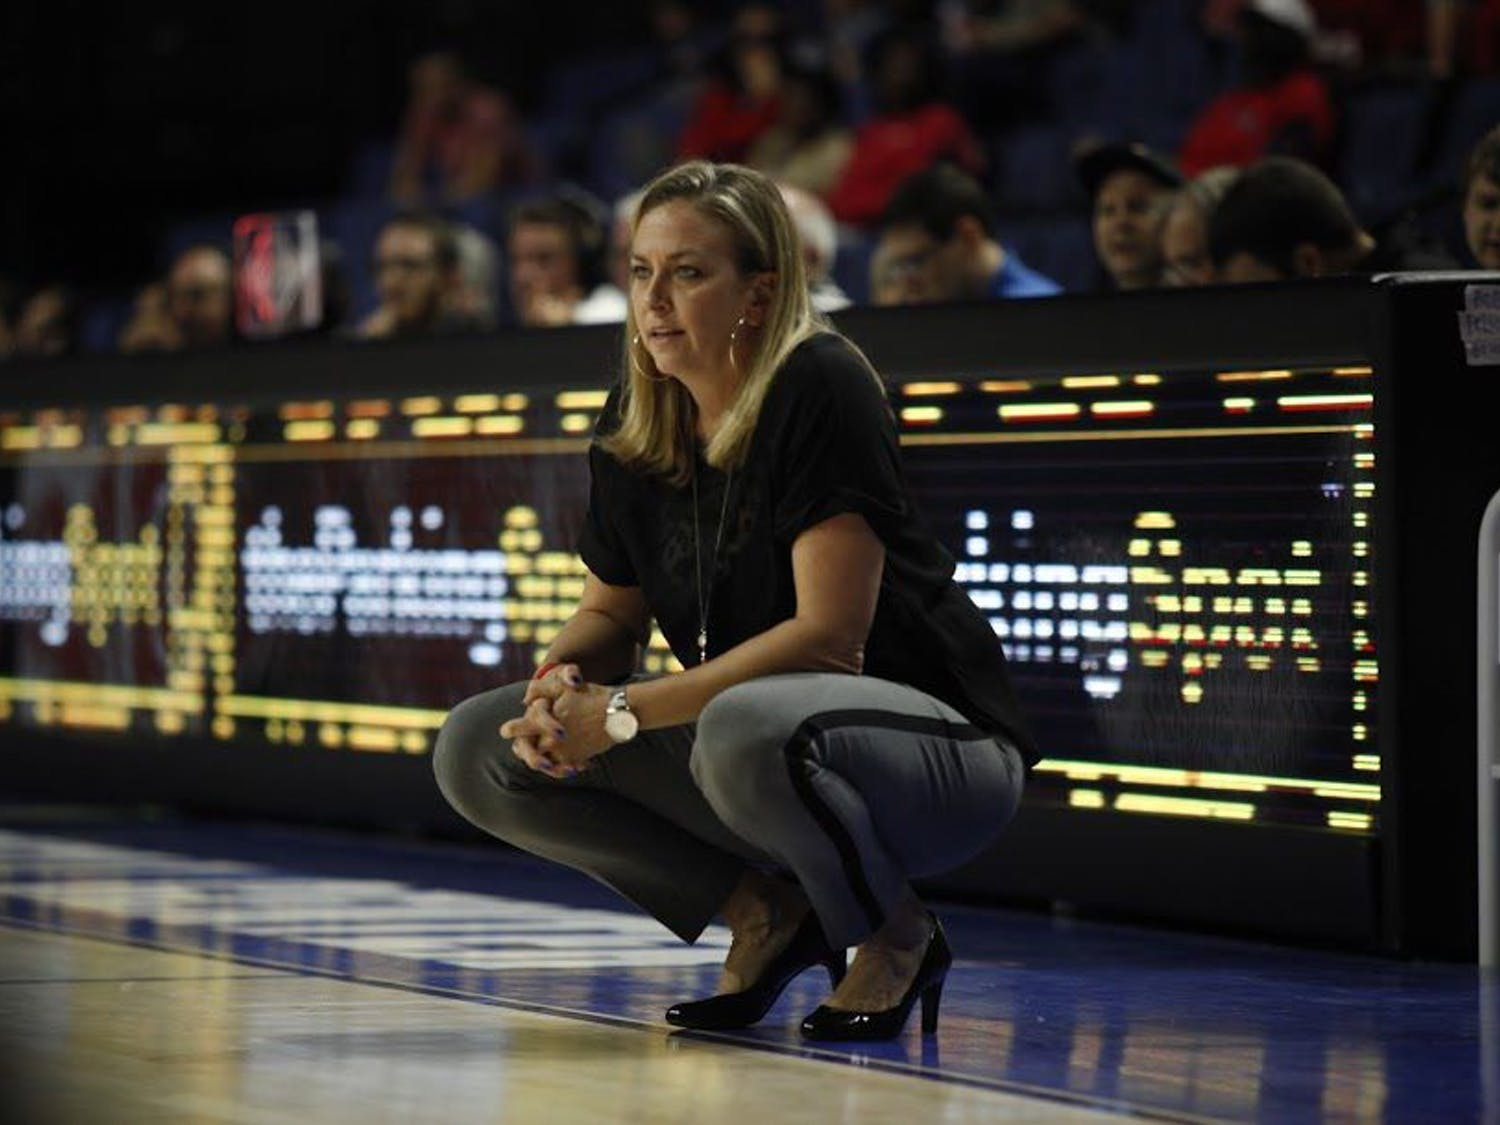 UF head coach Amanda Butler looks on during Florida's 84-75 loss to Ole Miss on Feb. 6, 2017, in the O'Connell Center.